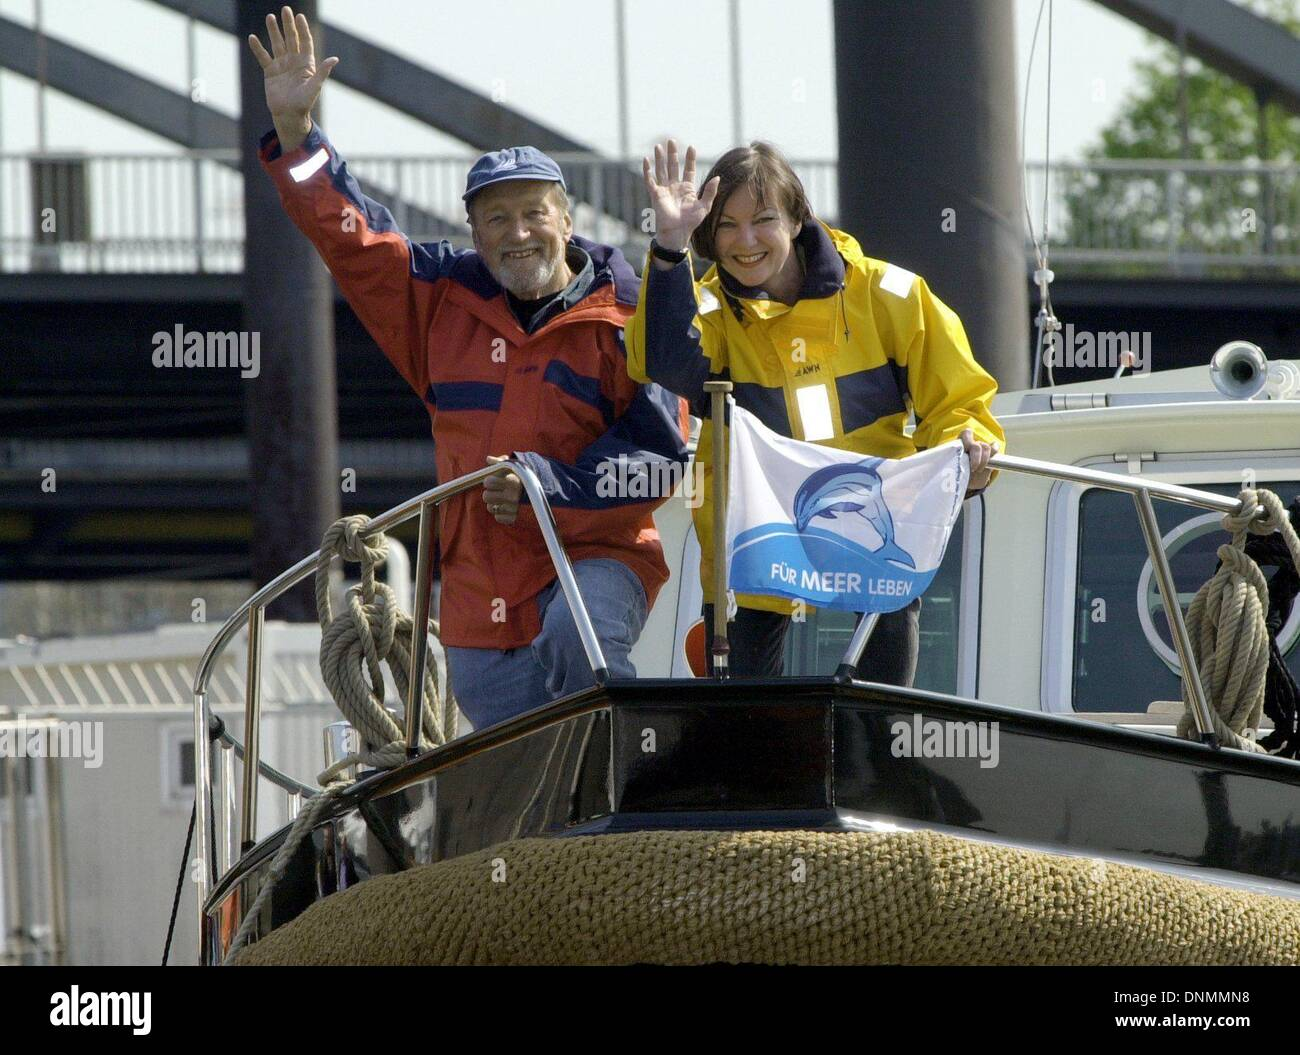 FILE - A file photo gated 08 May 2001 shows circumnavigator Rollo Gebhard with his wife Angelika on his boat 'Solveig VII' in the port of Hamburg, Germany. Rollo Gebhard died on 27 December 2013 at the age of 92 in his home in Bad Wiessee at Tegernsee Lake. The author, photographer and dolphin conservationist, circumnavigated the globe in a sailboat twice in 1967 to 1970 and 1975. The first German to do this alone. Photo: KAY NIETFELD - Stock Image